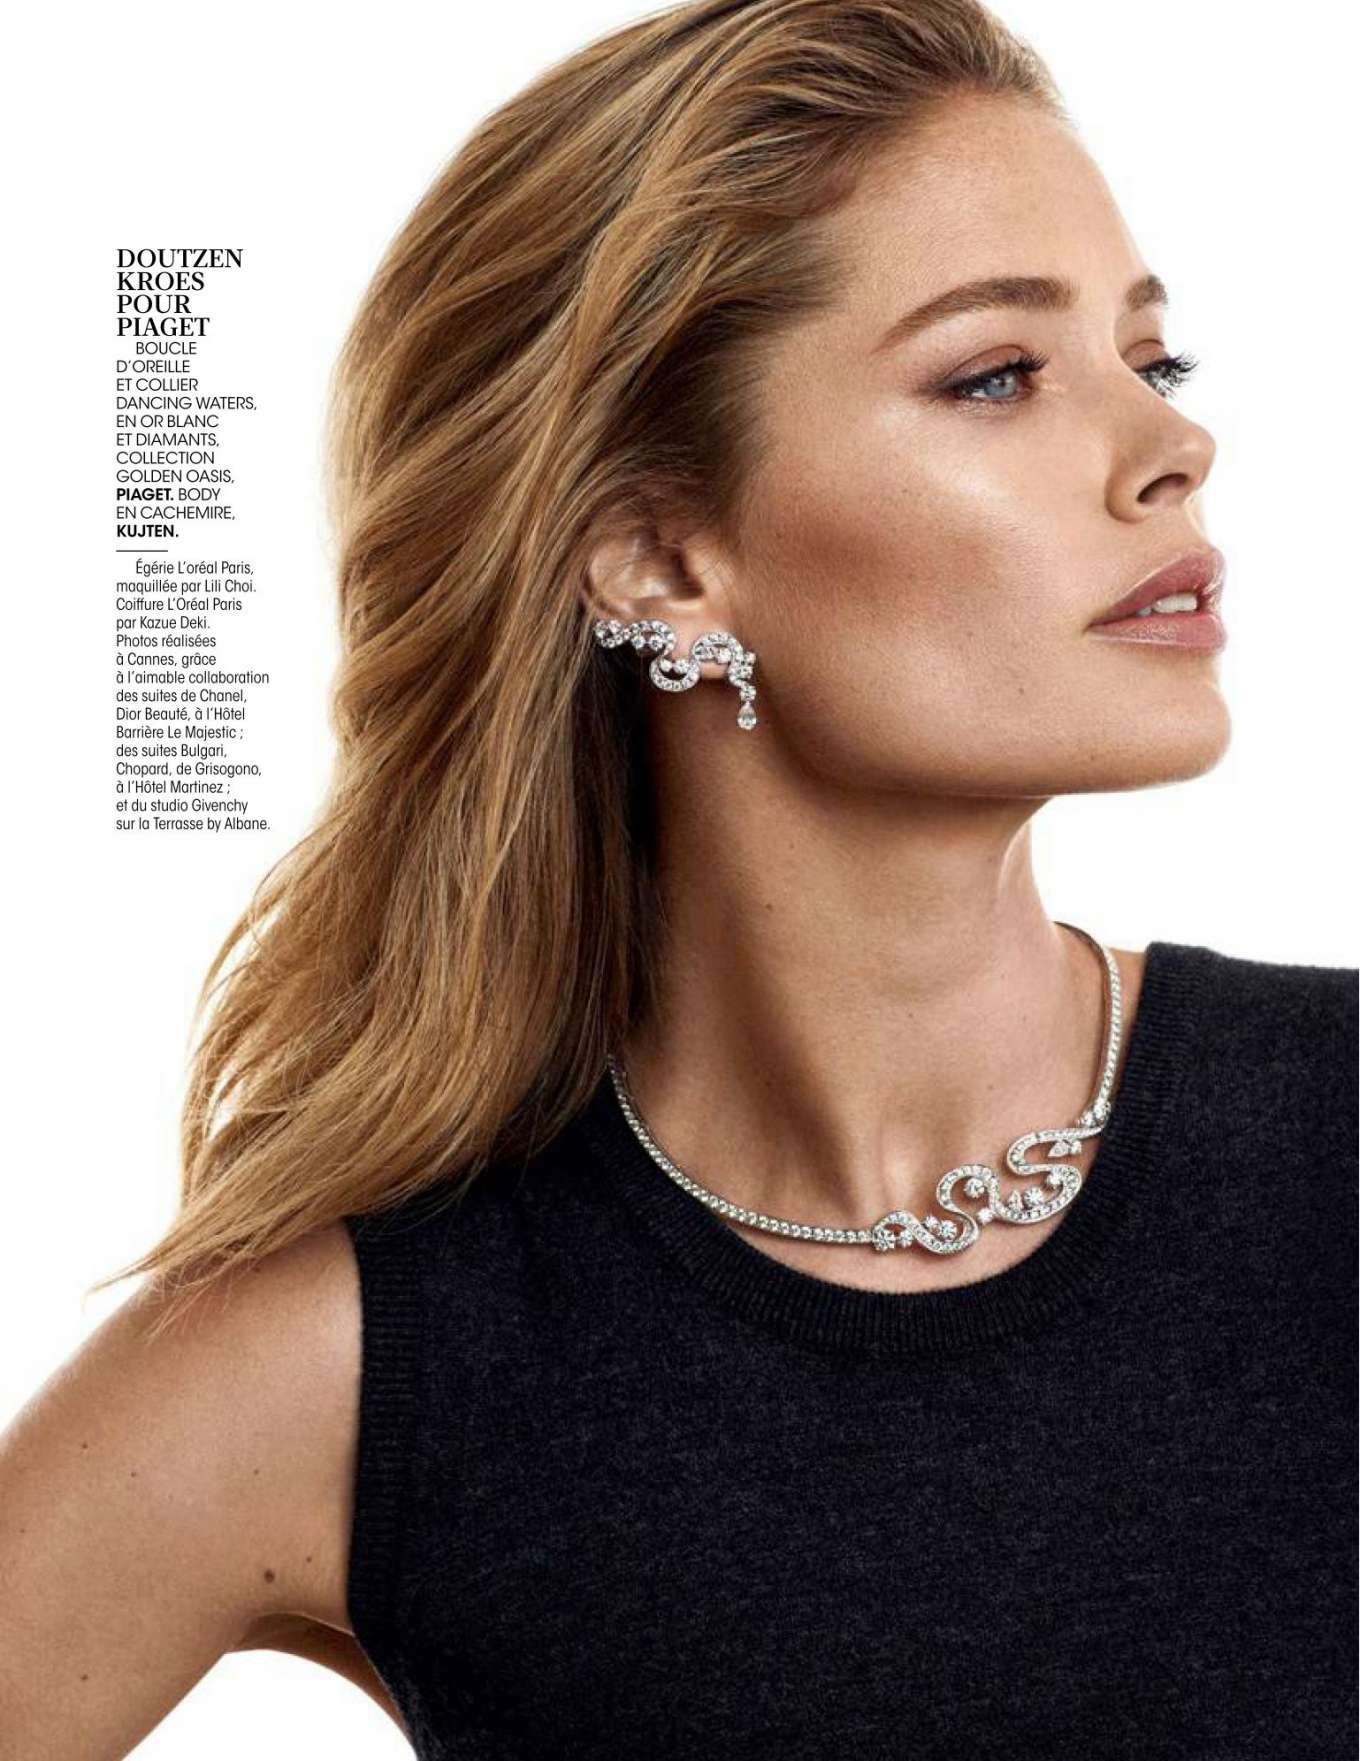 Doutzen Kroes - Madame Figaro Magazine (December 2019)